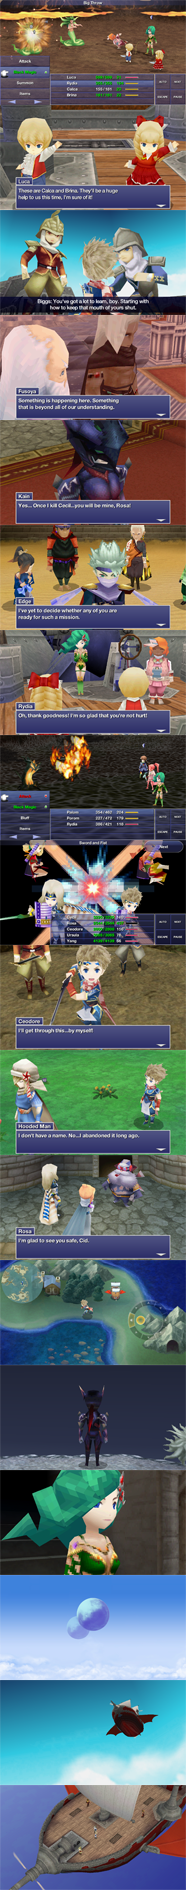 Final Fantasy Iv The After Years Square Enix